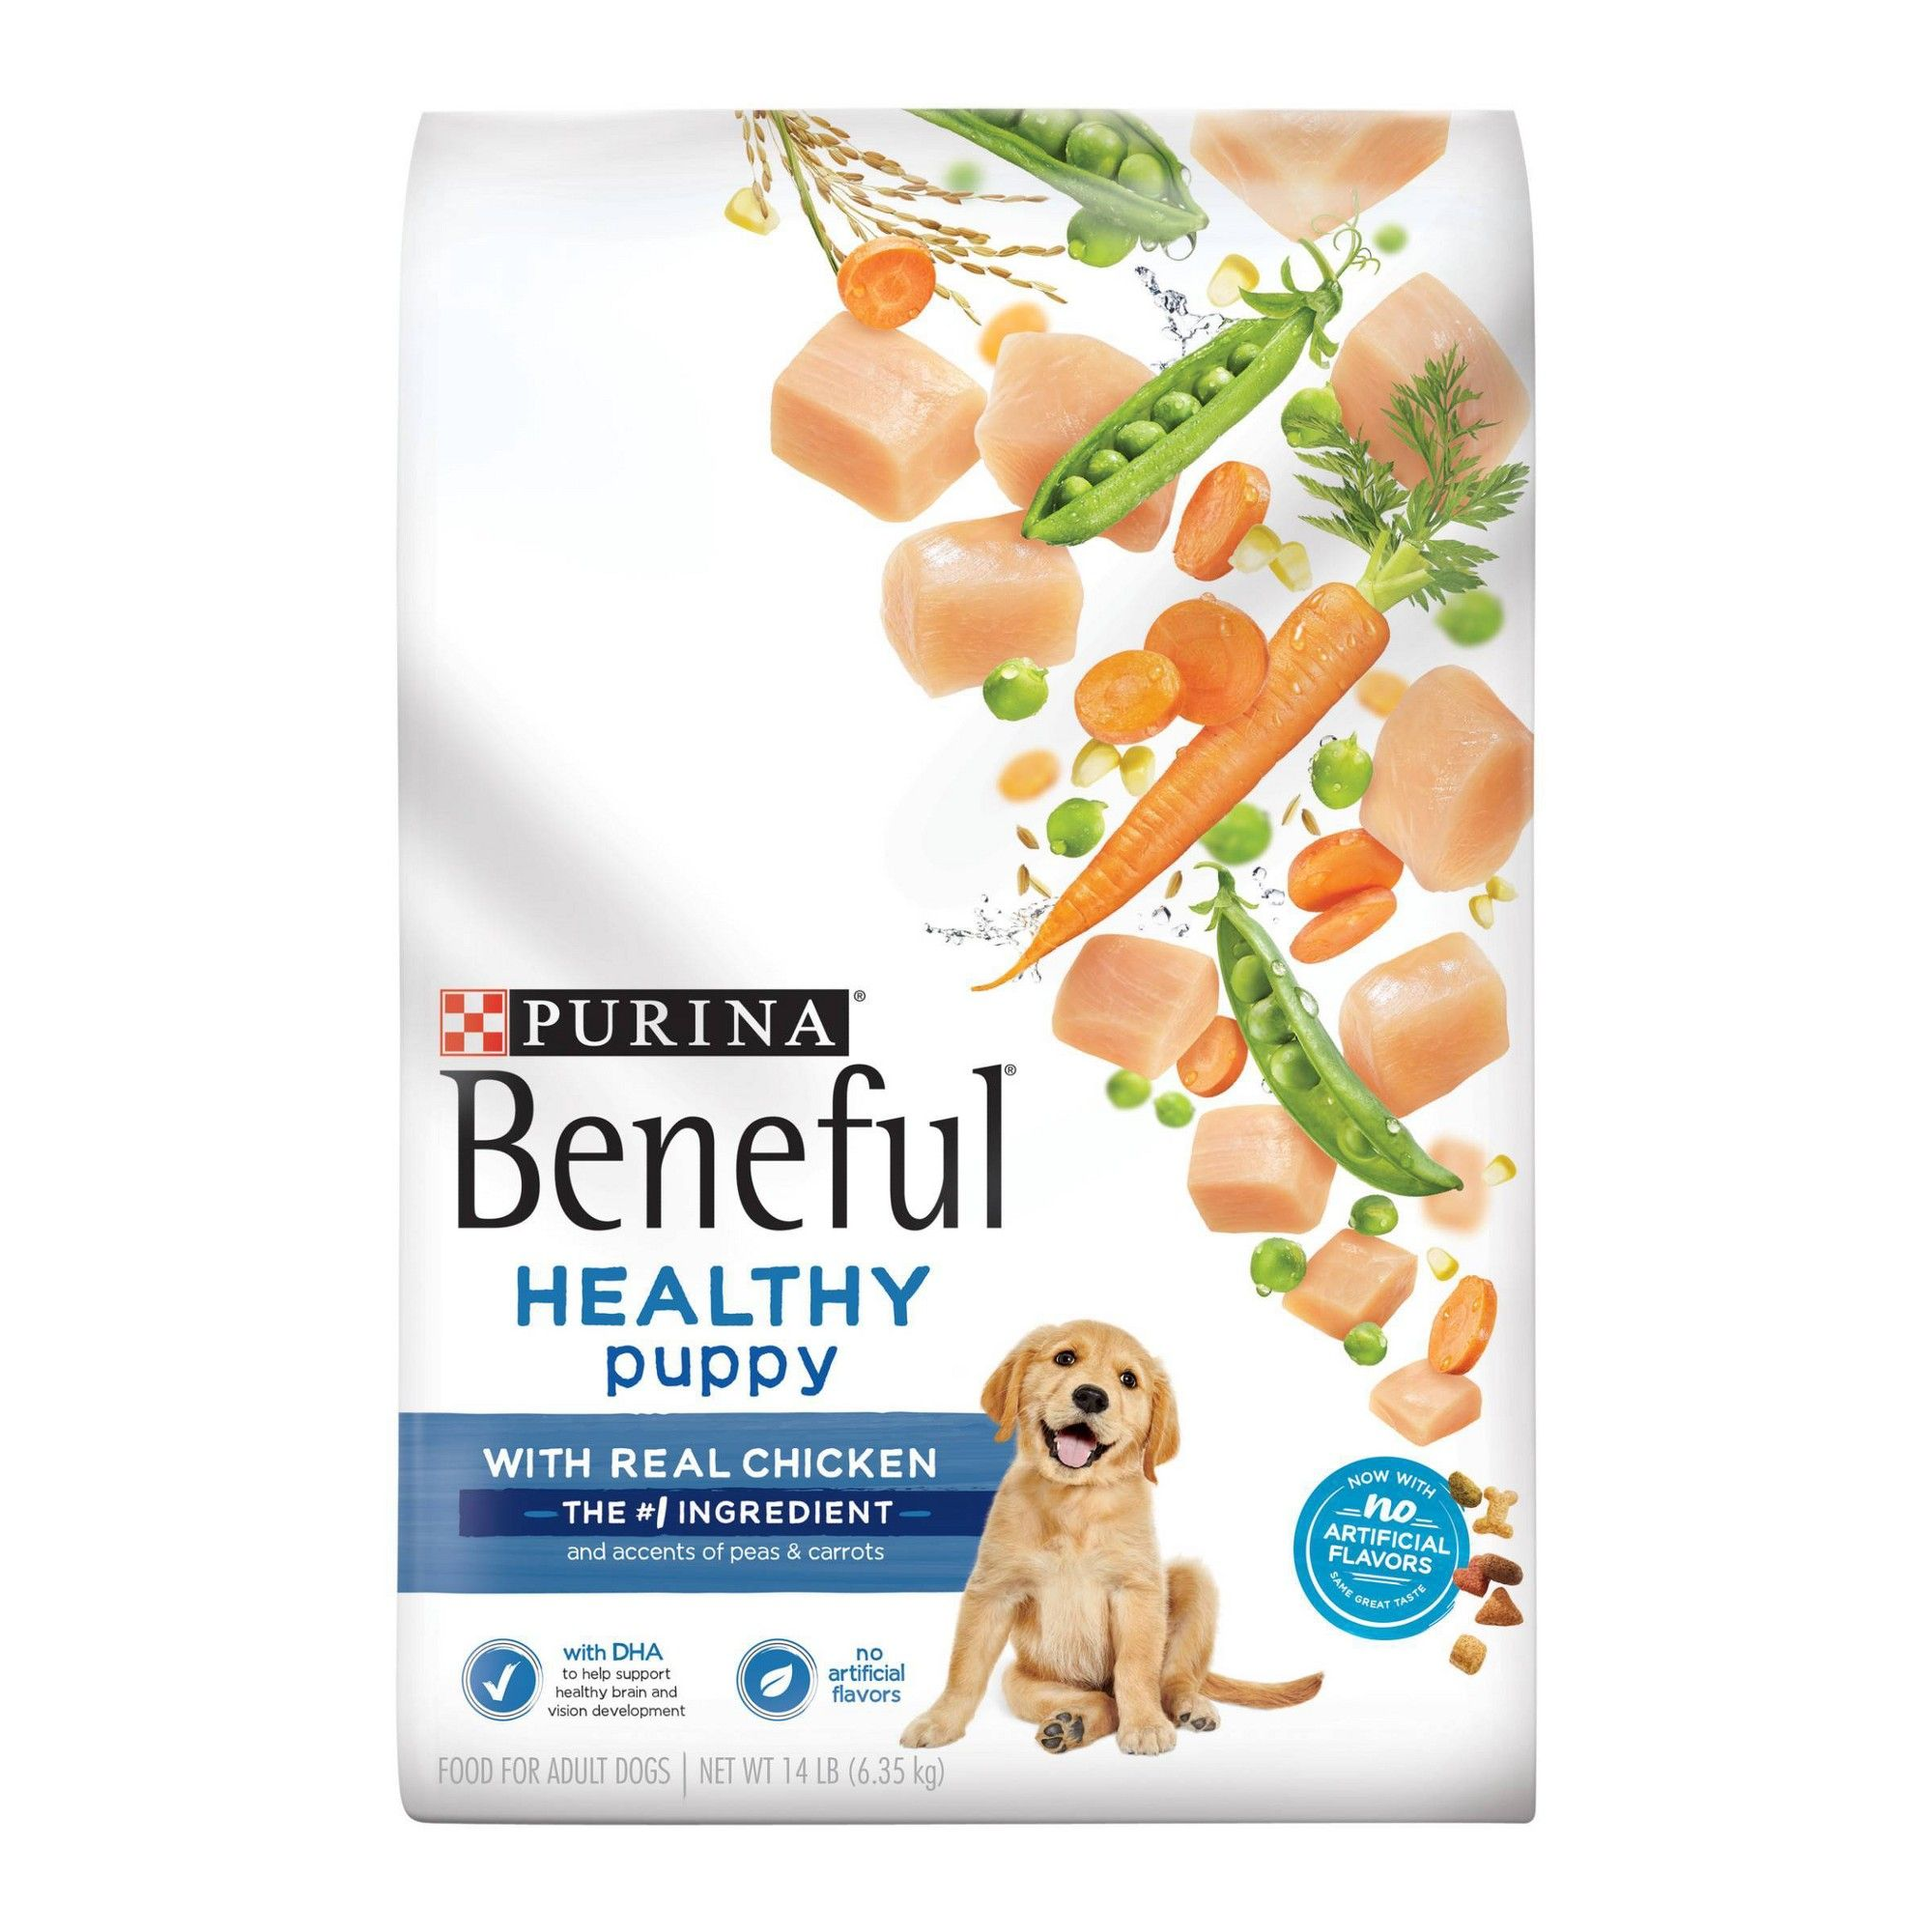 Purina Beneful Food Healthy Puppy With Real Chicken Dry Dog Food